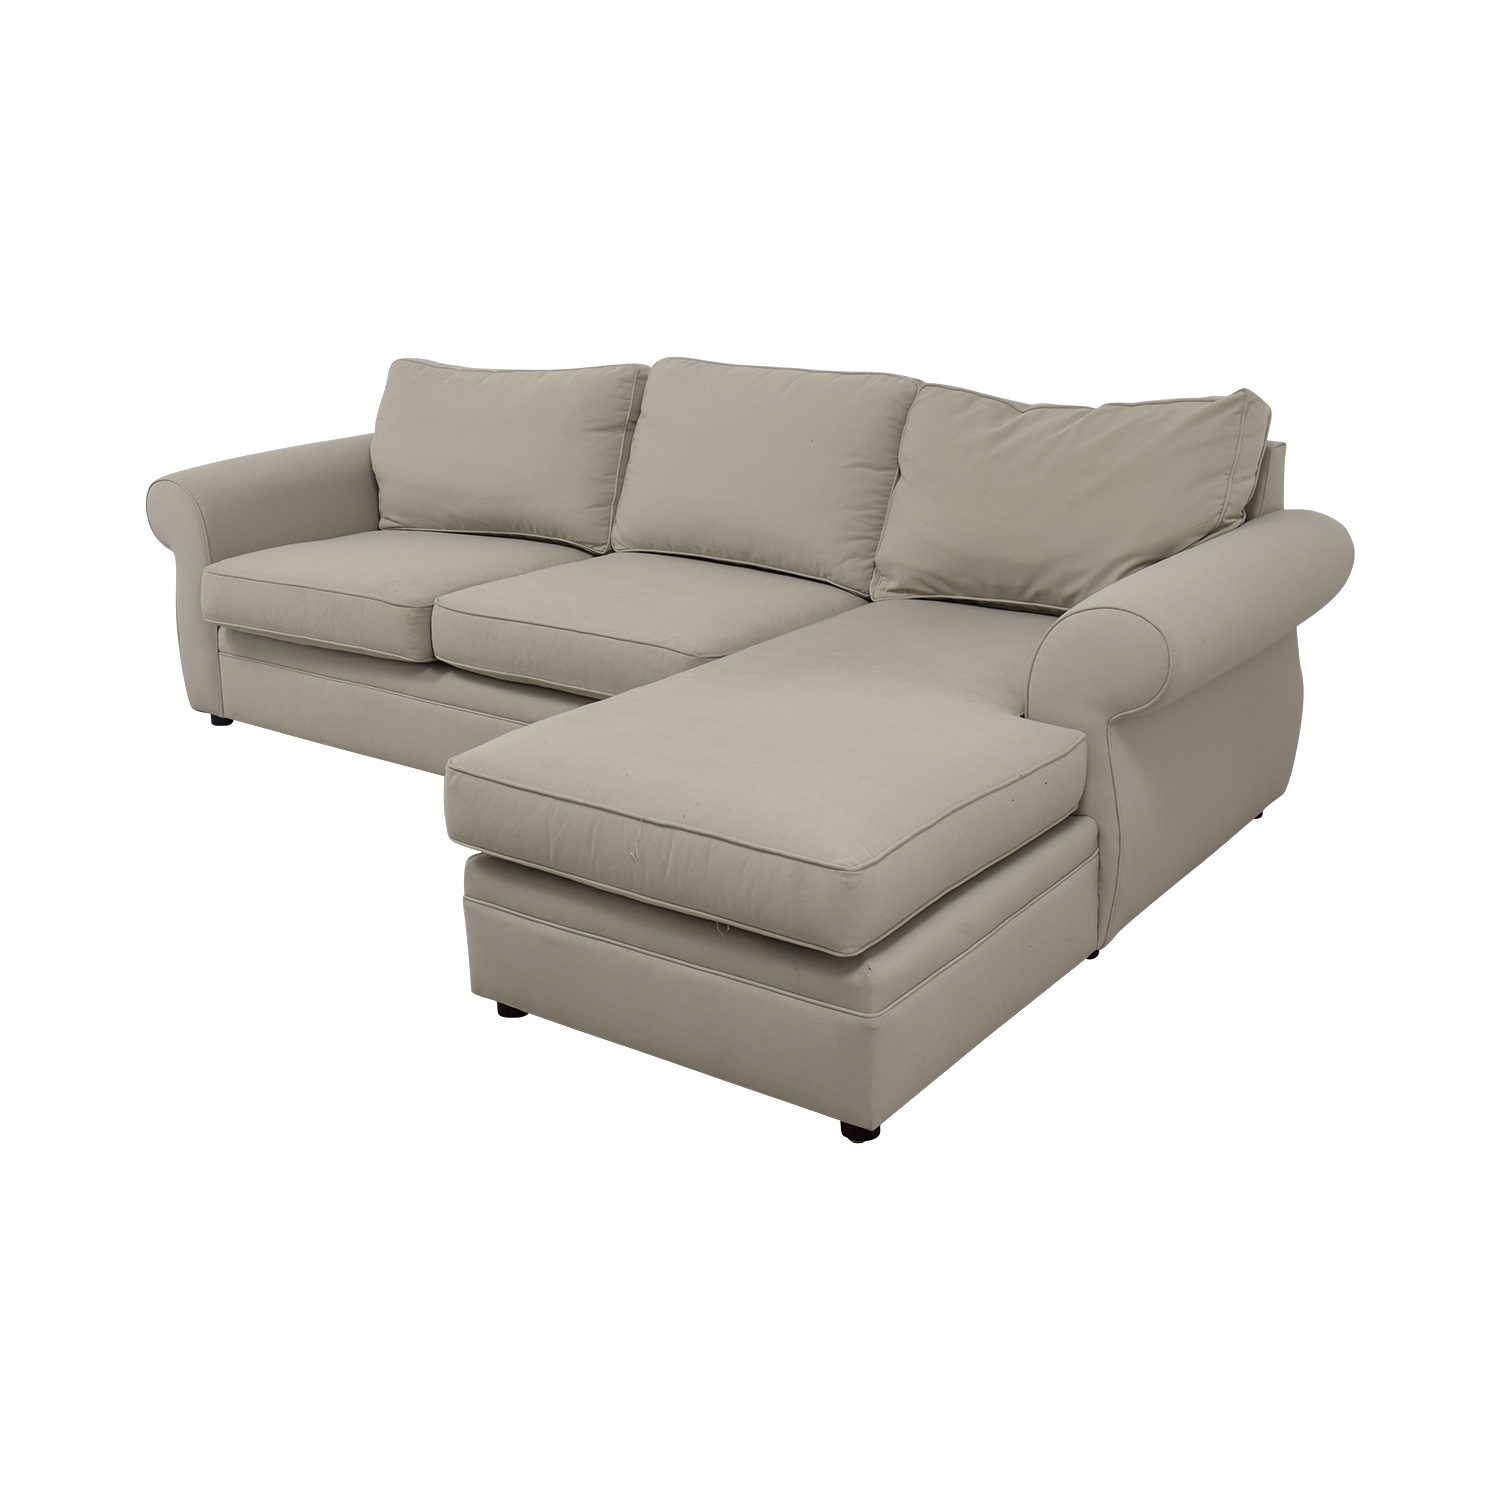 [%76% Off – Pottery Barn Pottery Barn Townsend Cream Upholstered With Widely Used Pottery Barn Chaises|Pottery Barn Chaises Regarding Most Popular 76% Off – Pottery Barn Pottery Barn Townsend Cream Upholstered|Current Pottery Barn Chaises Pertaining To 76% Off – Pottery Barn Pottery Barn Townsend Cream Upholstered|2018 76% Off – Pottery Barn Pottery Barn Townsend Cream Upholstered Throughout Pottery Barn Chaises%] (View 4 of 15)